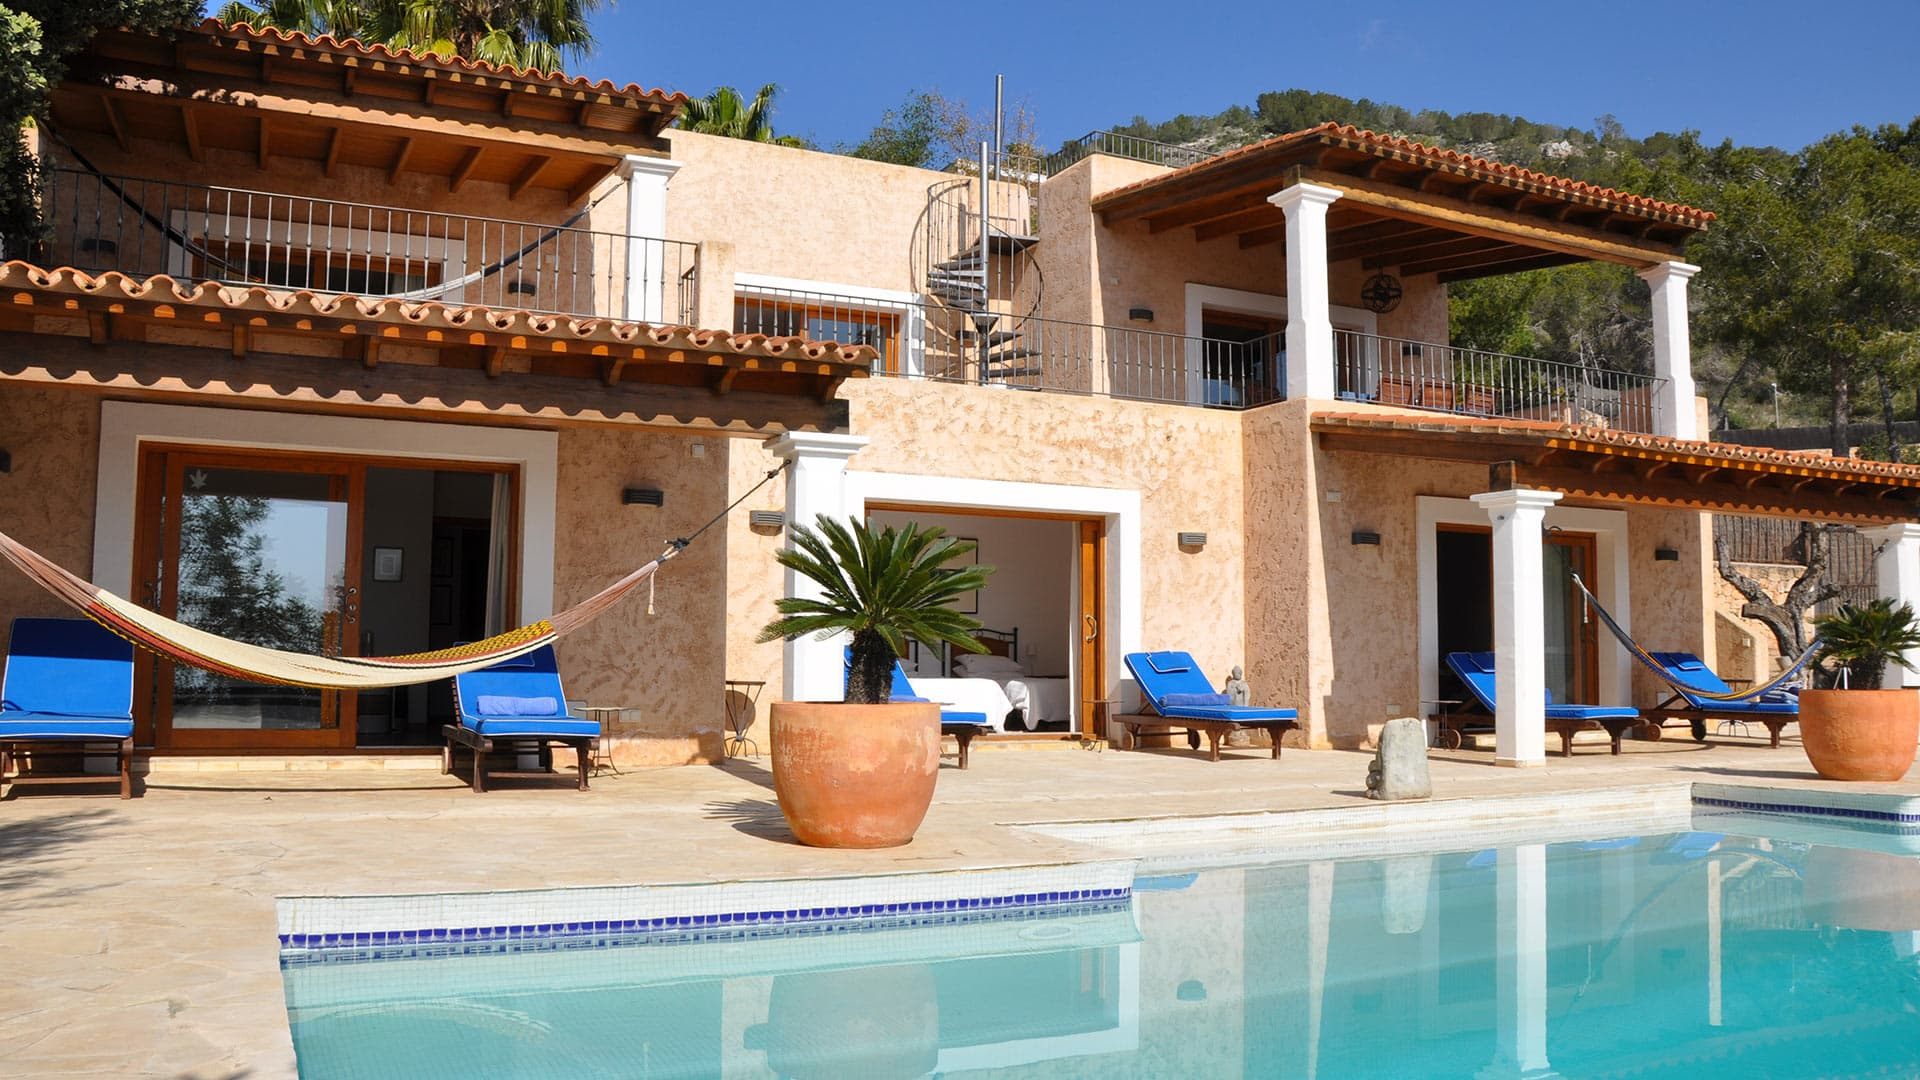 Villa Villa 758, Rental in Ibiza